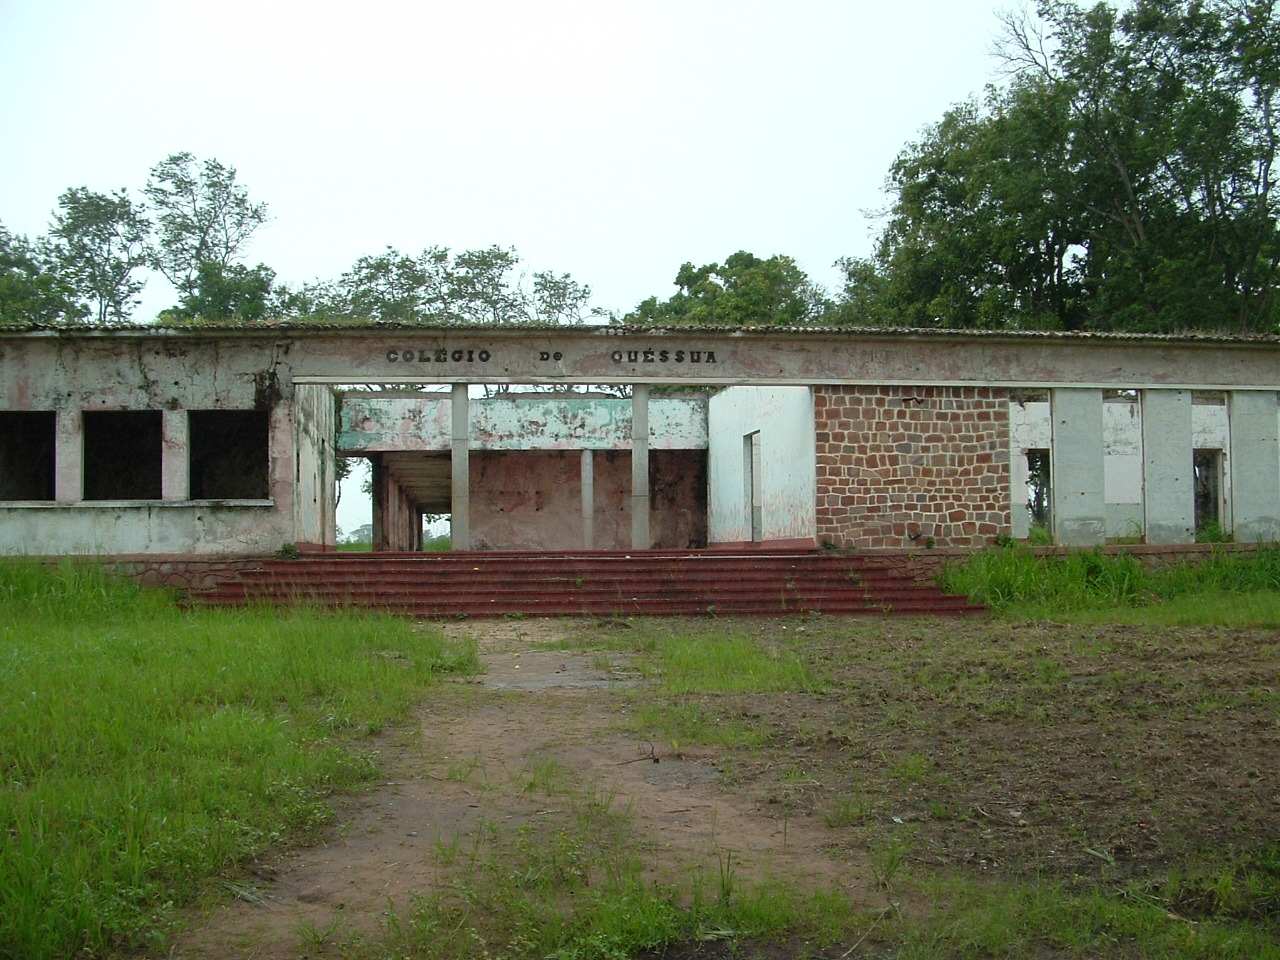 Quessua High School before reconstruction